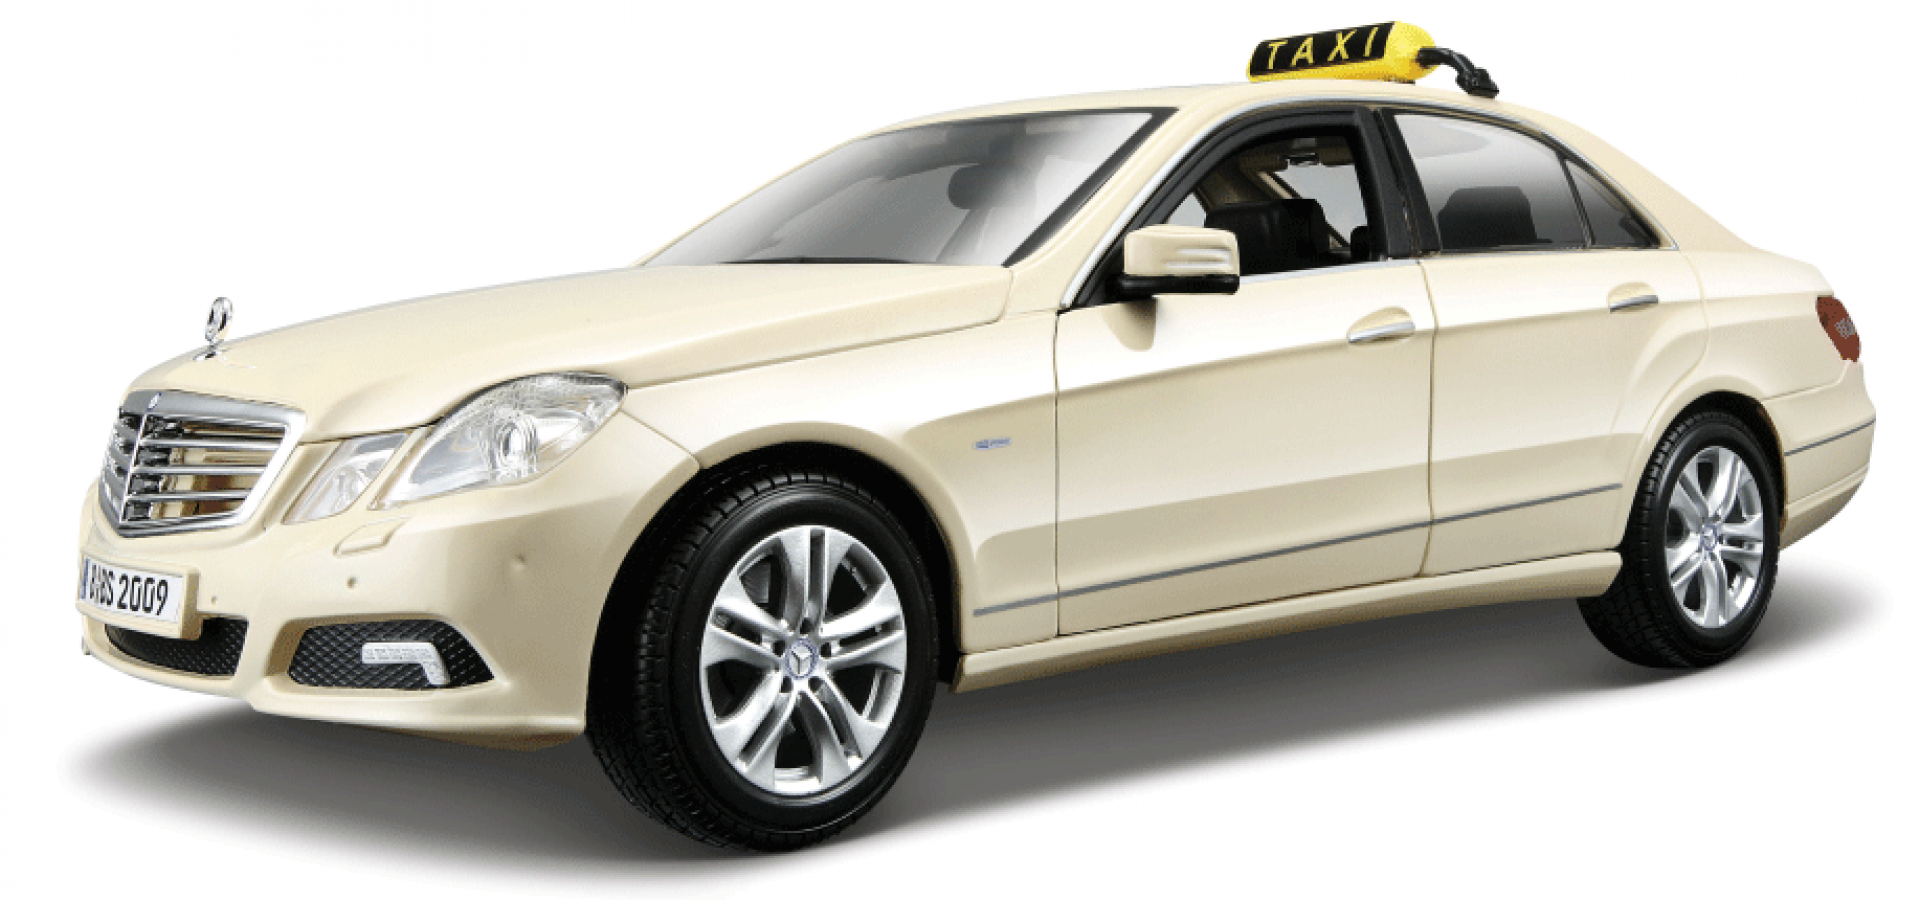 What should one look for in a Taxi Service? - Top Tourist